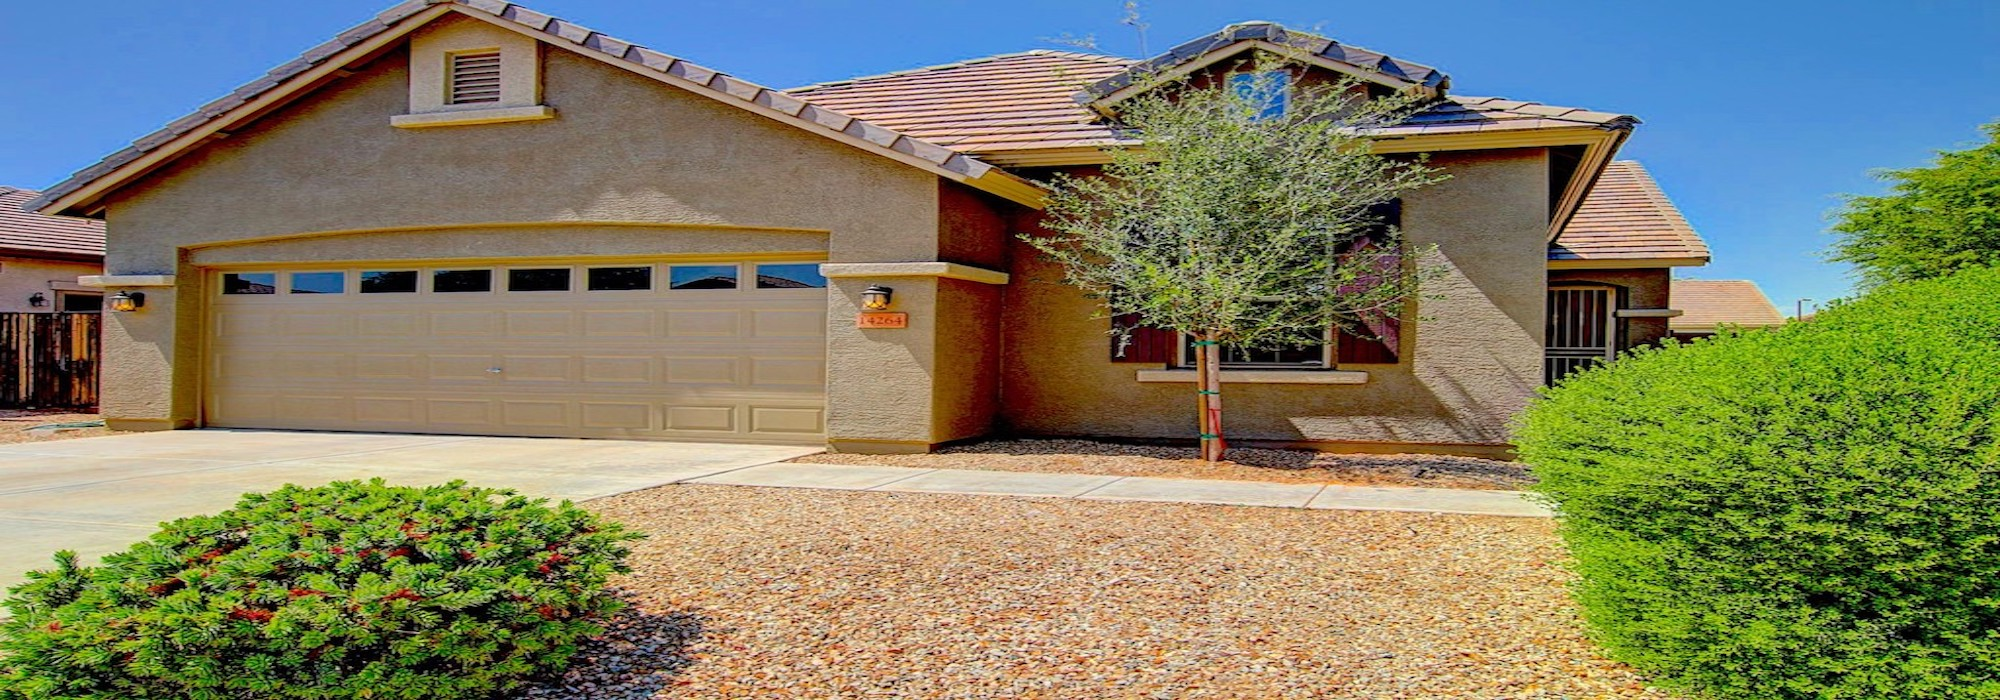 SOLD – Looking for that something special…here it is! Gorgeous Turnkey Sierra Verde Home